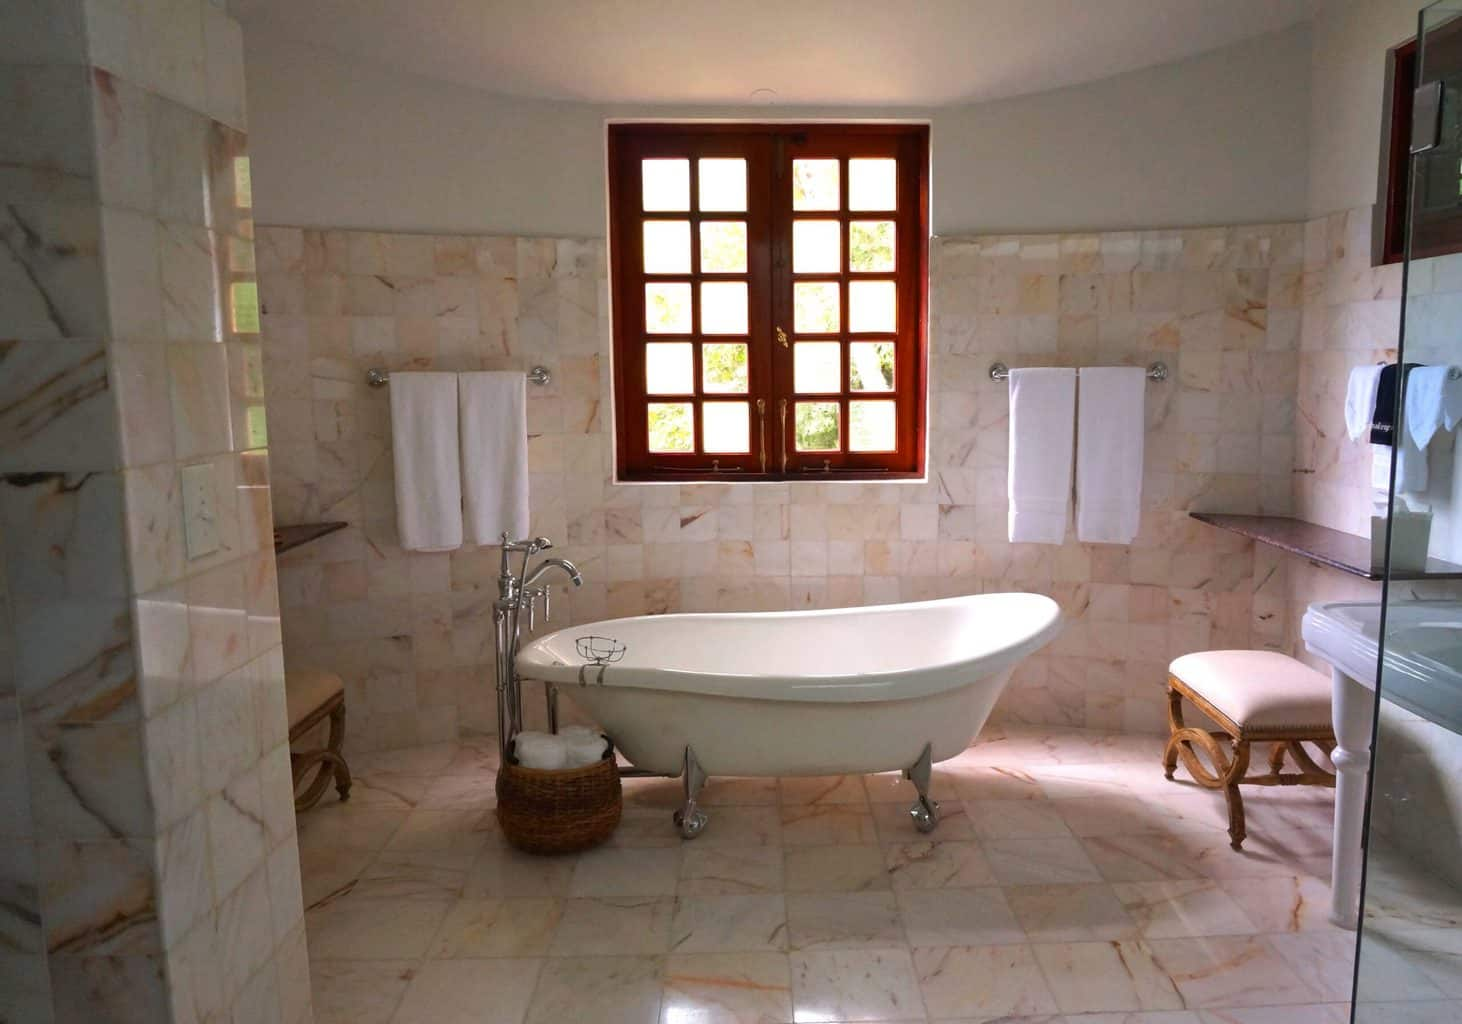 A bathroom with tiled walls and a bathtub at the center